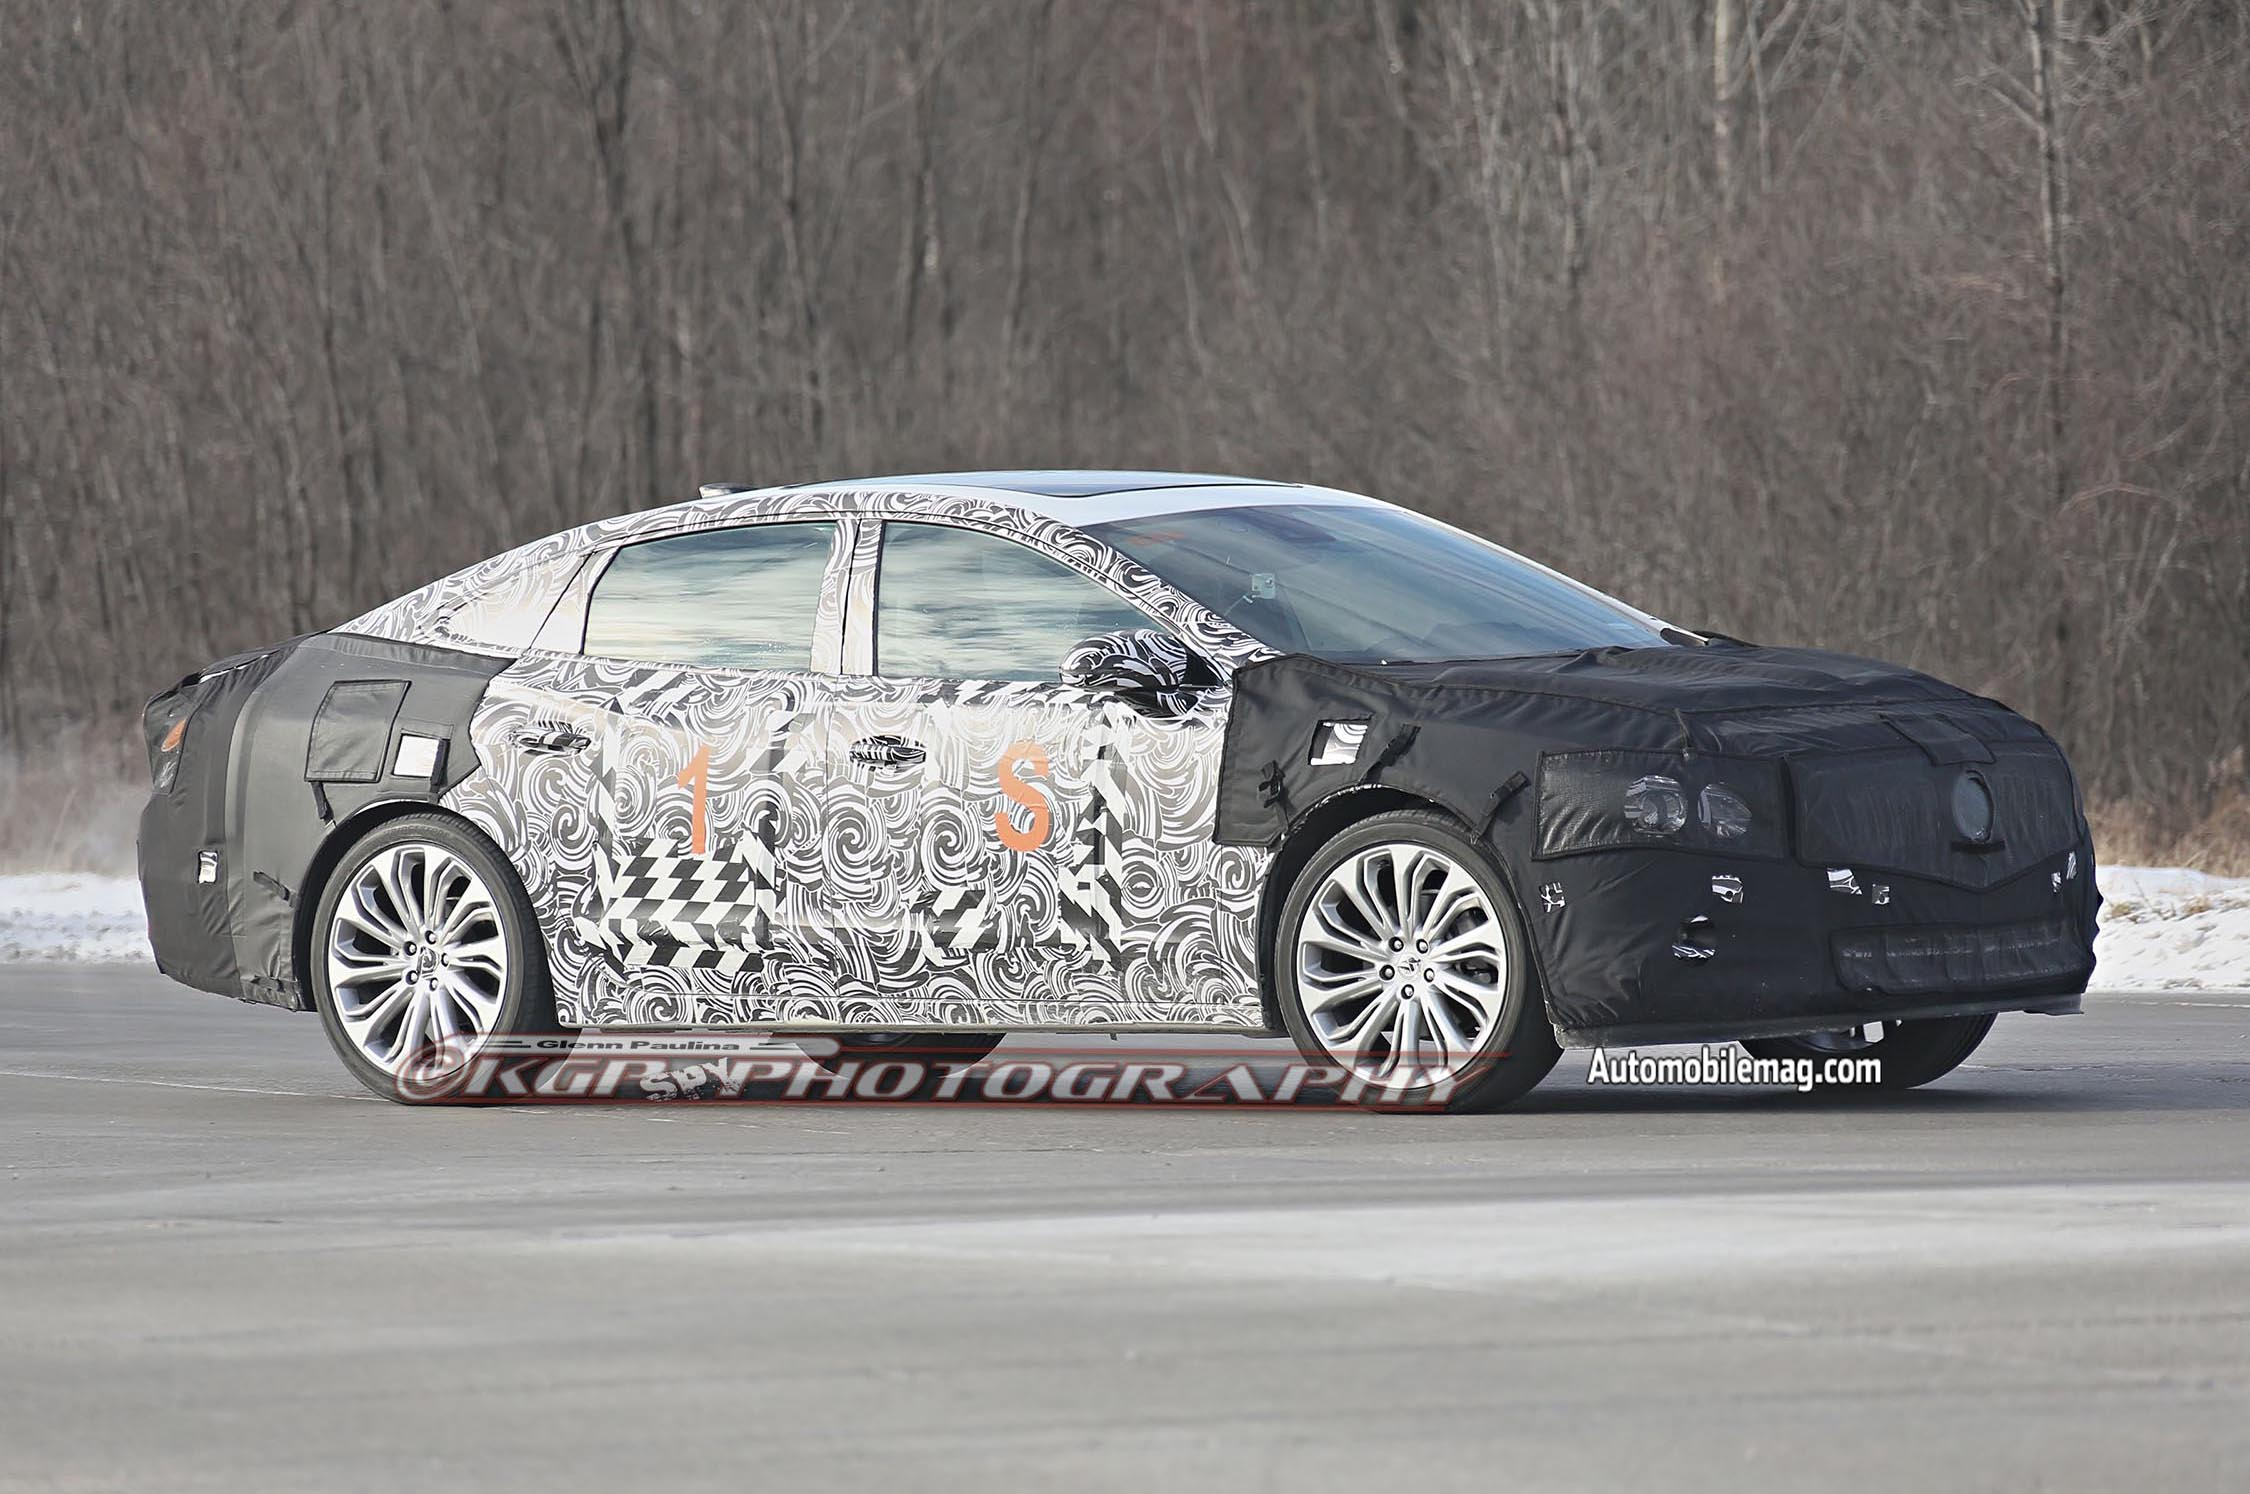 2016 Buick LaCrosse Spied Again